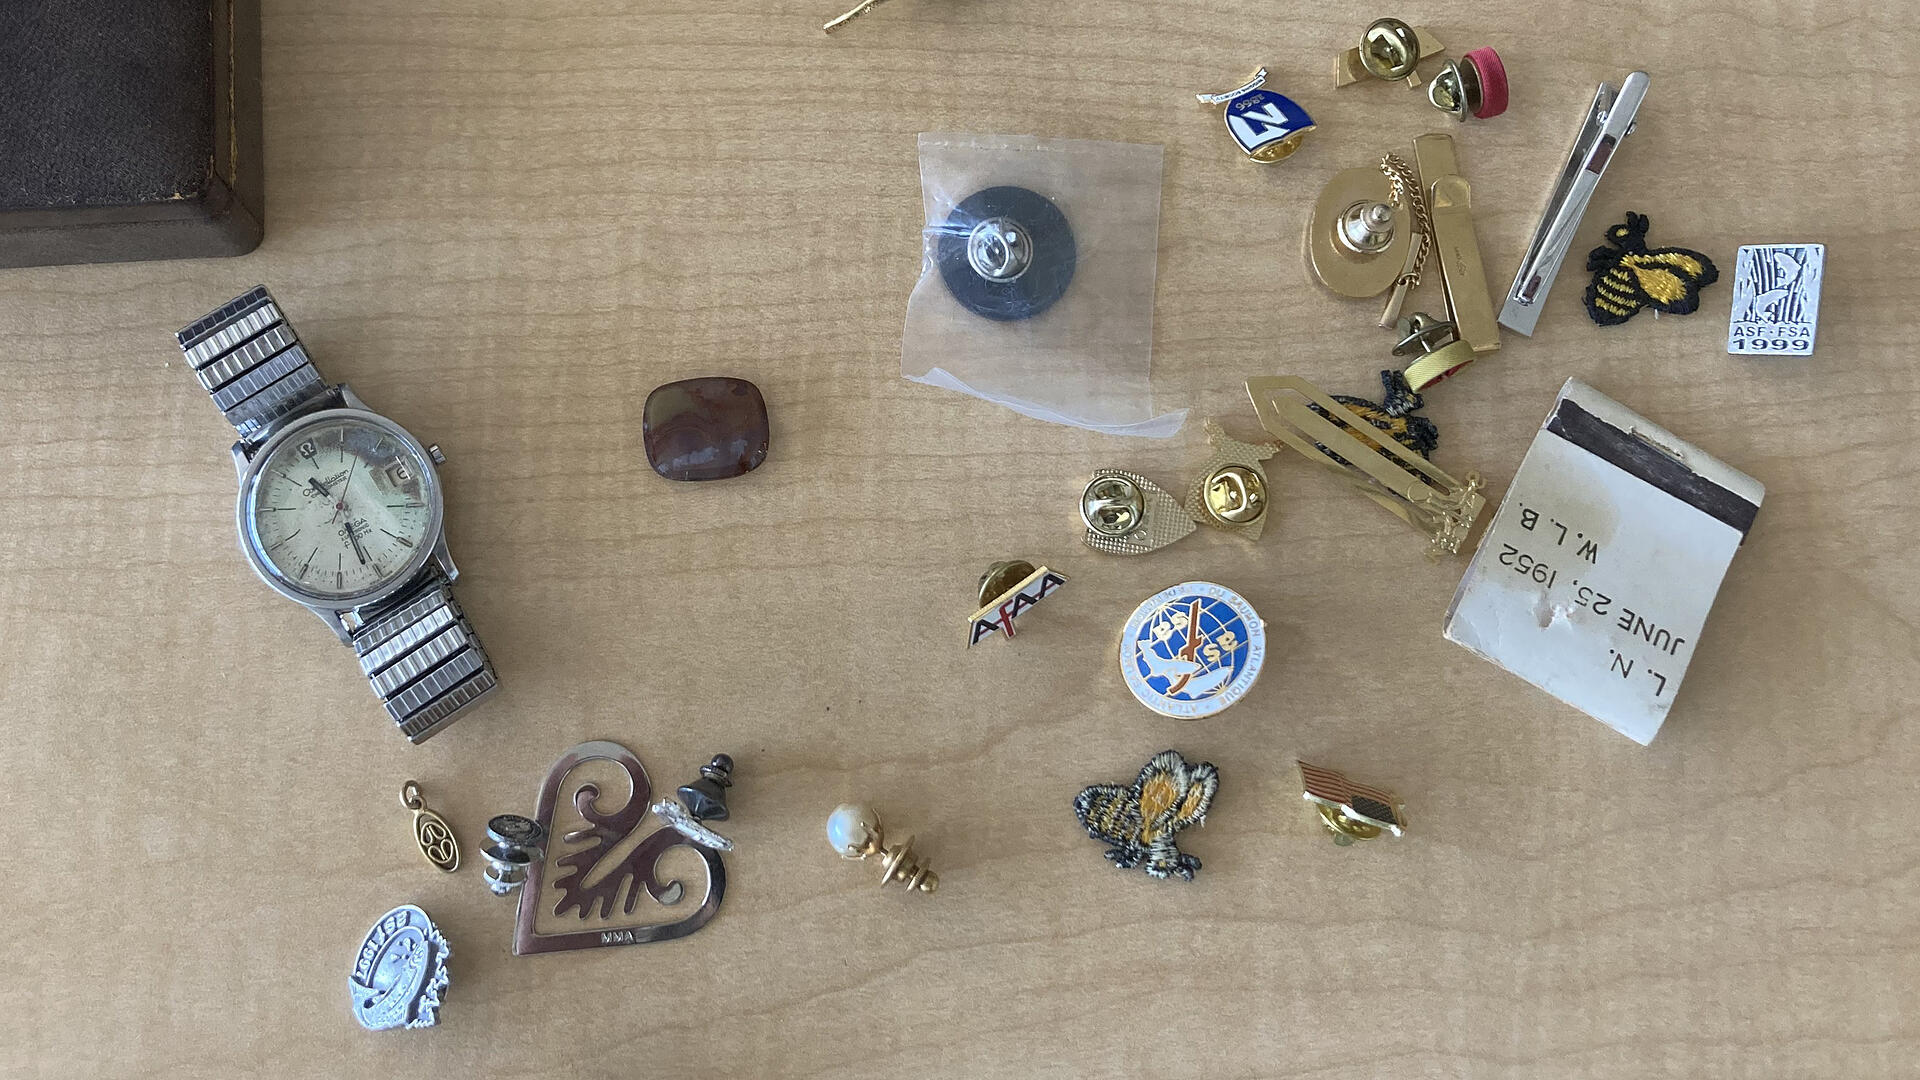 An old watch, a matchbook from 1952, lapel pins, old pendants, and trinkets are scattered over a wooden desk